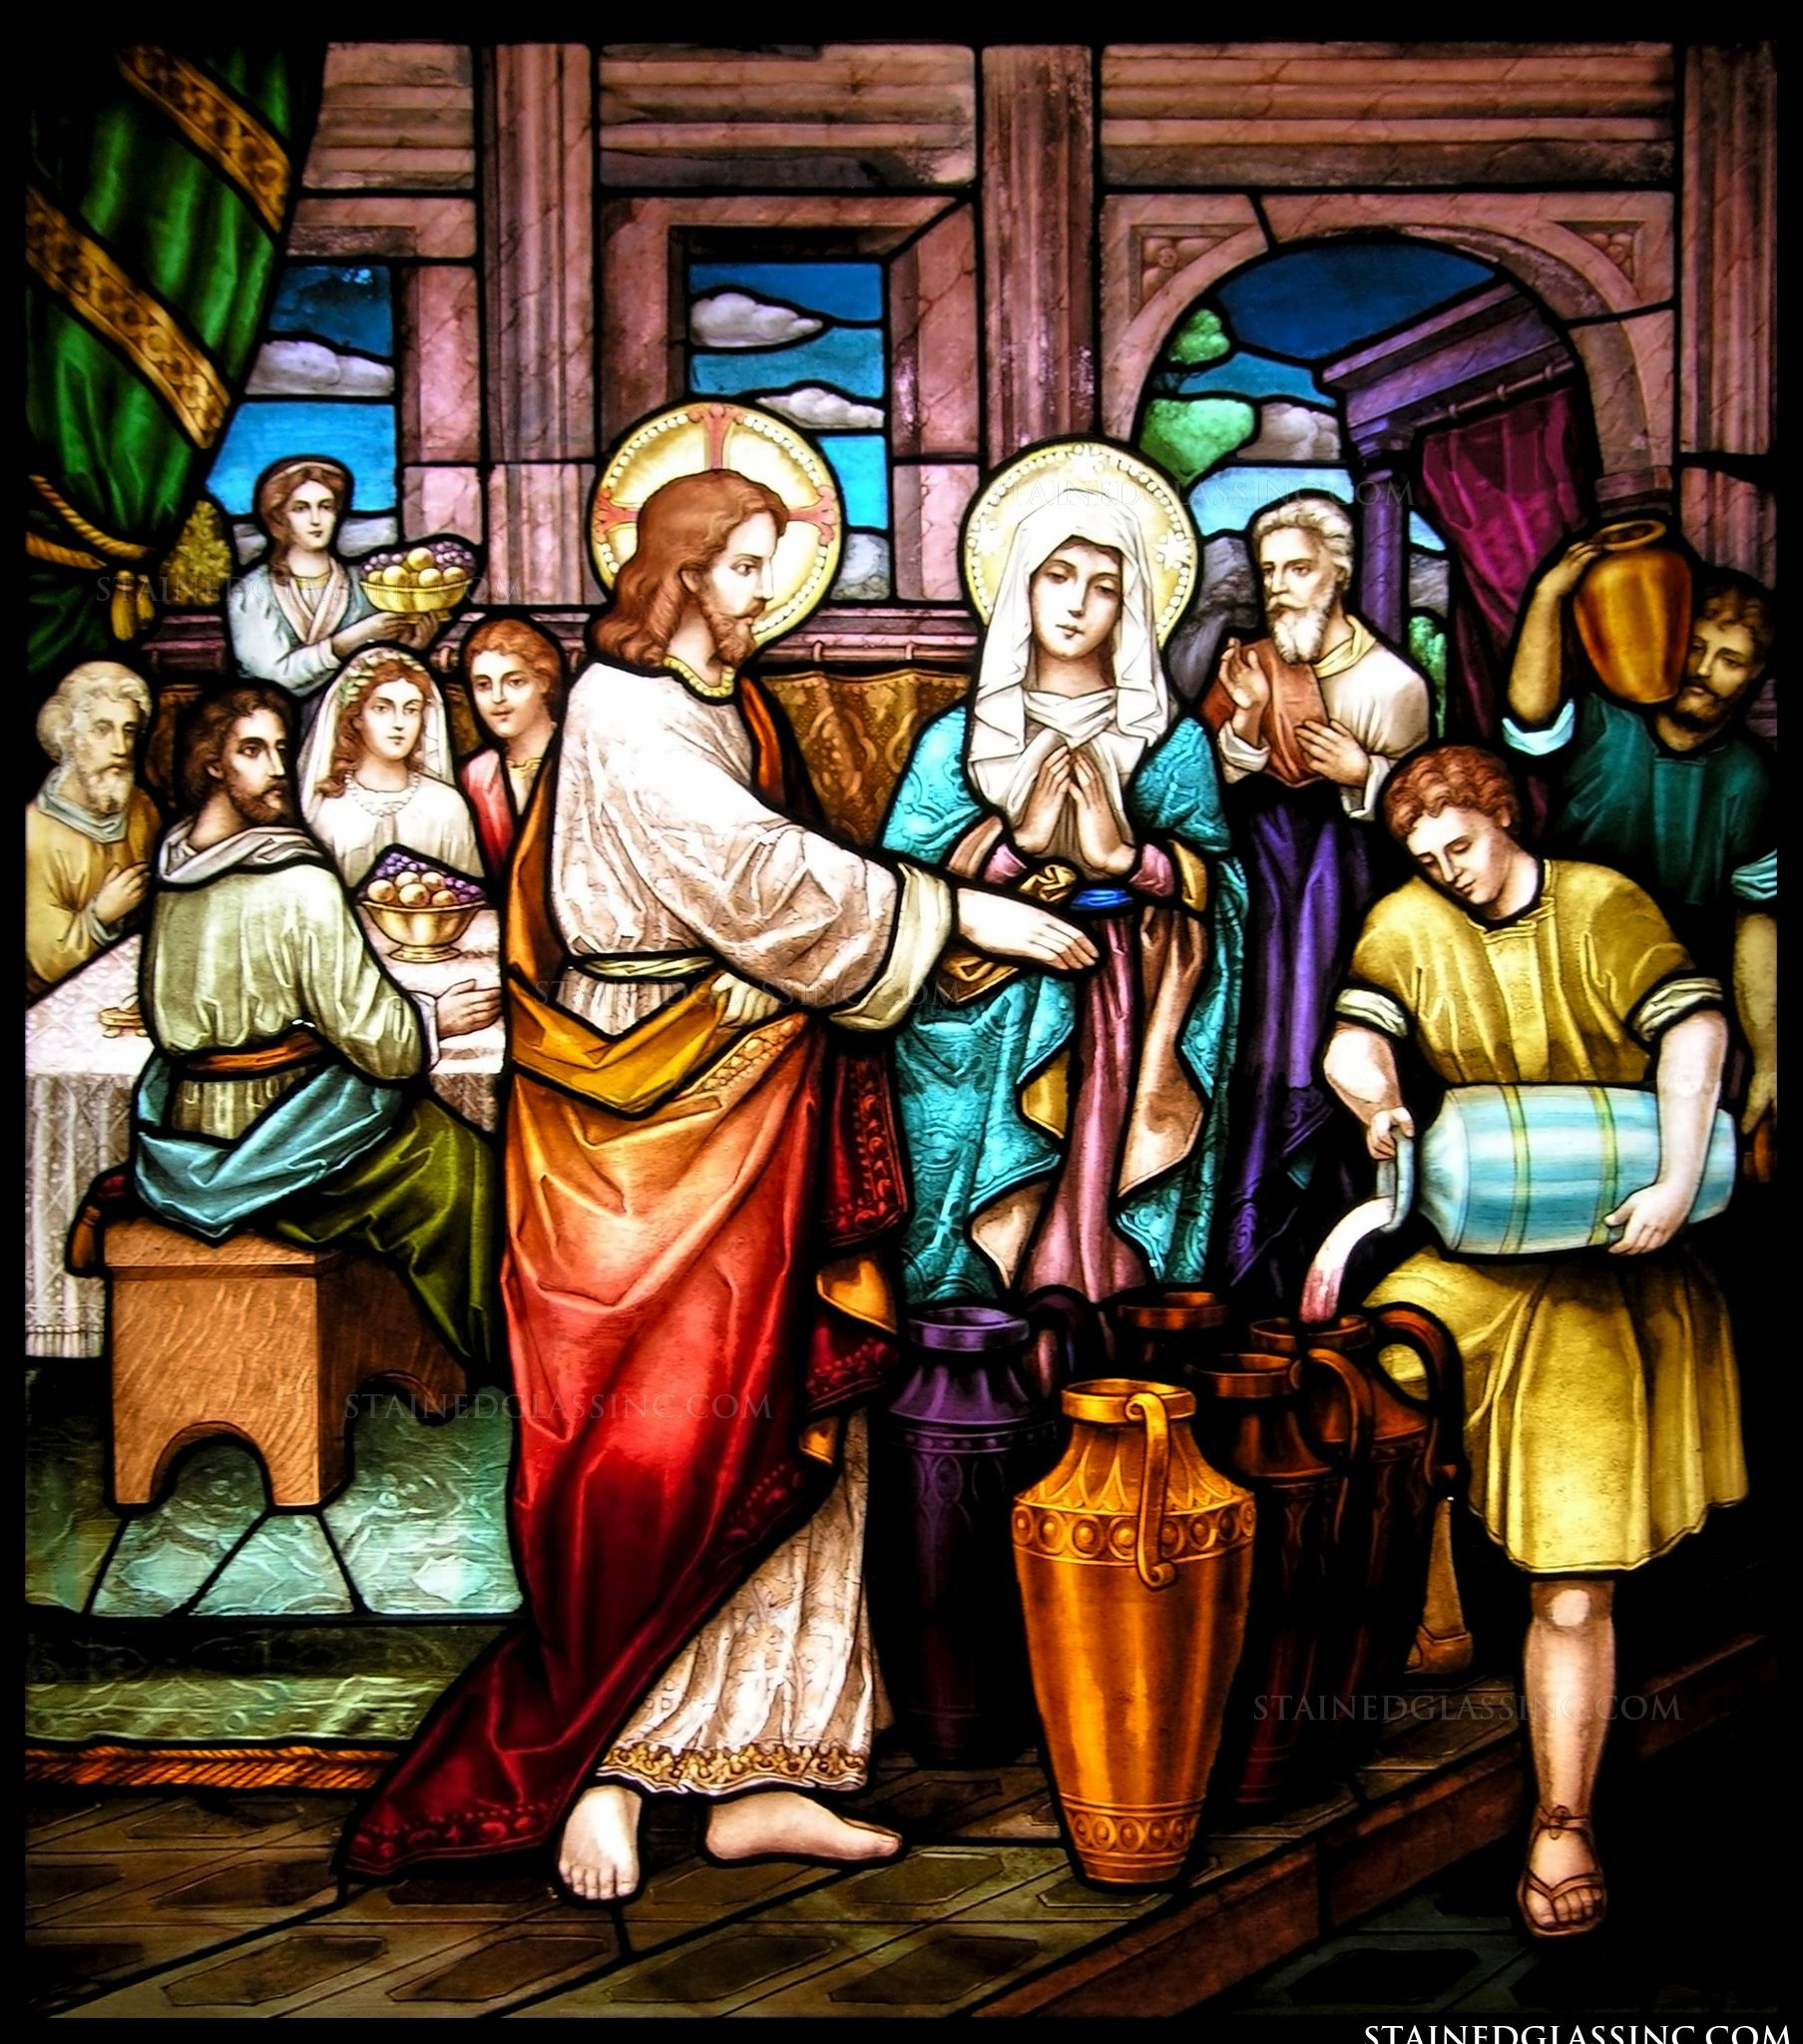 quotthe wine and the weddingquot religious stained glass window